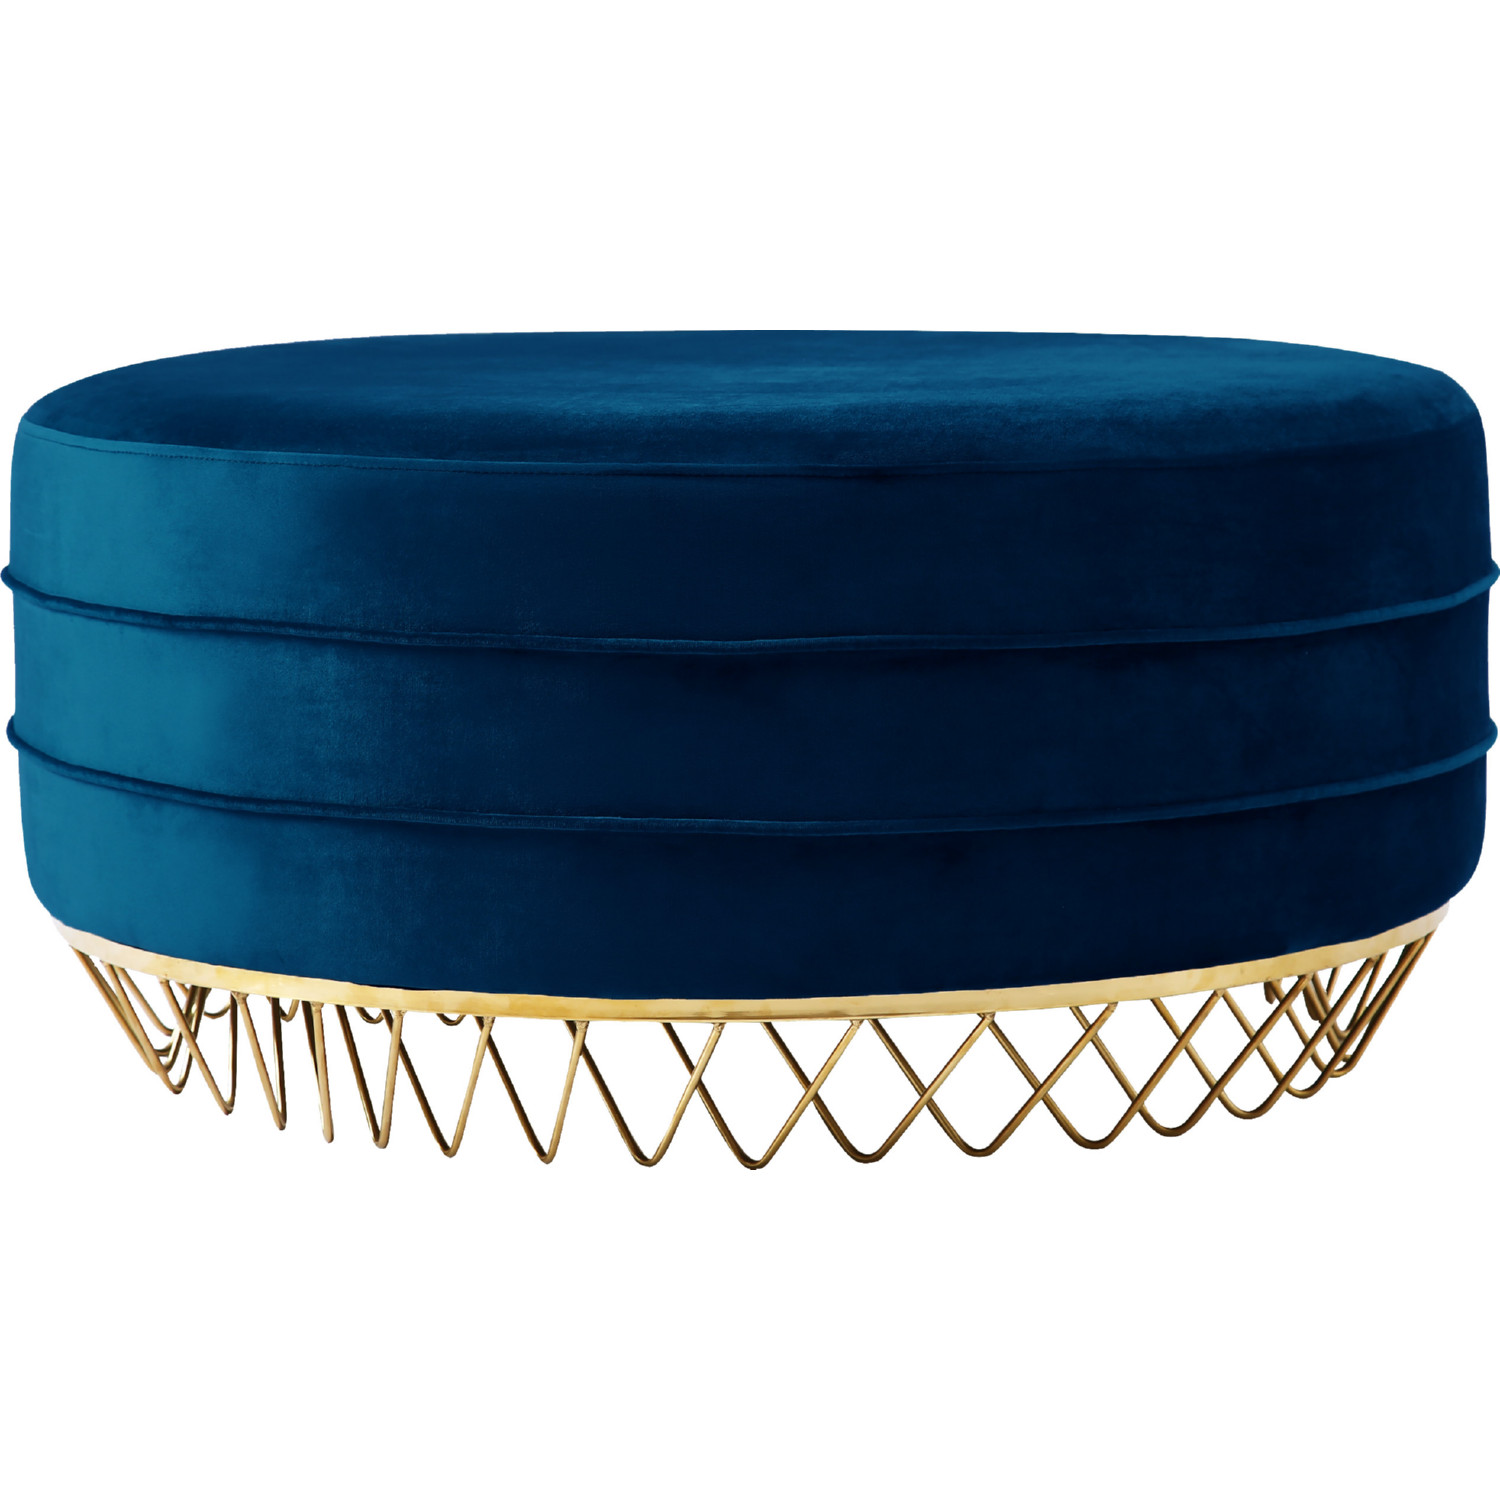 best service 2e0c1 91fd5 Revolve Ottoman Coffee Table in Navy Velvet on Gold Stainless by Meridian  Furniture